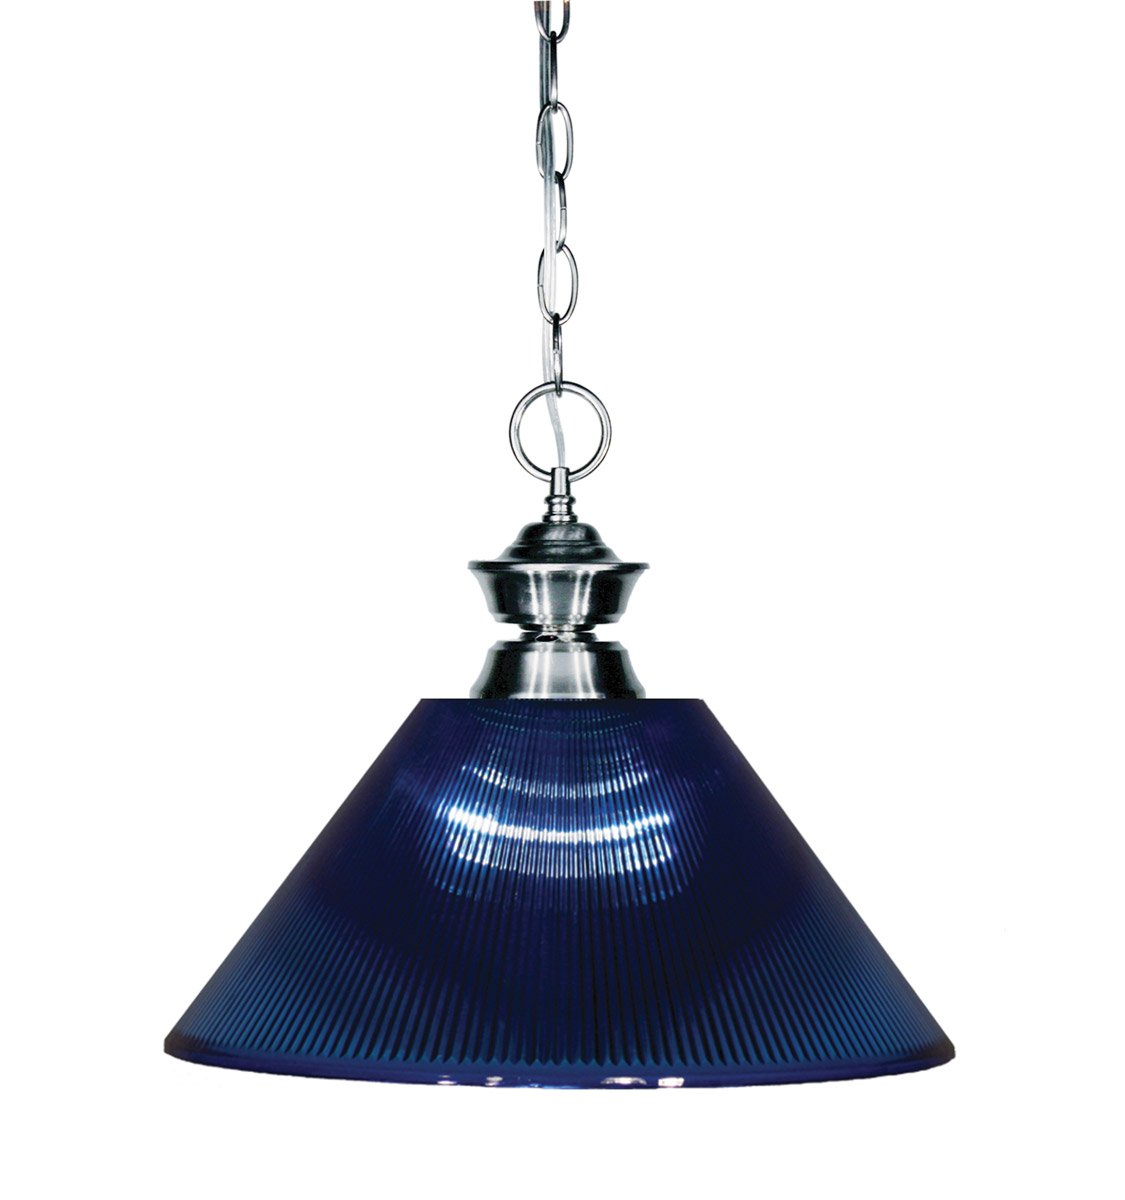 Island Lighting 1 Light With Gun Metal Finish Steel Medium Base Bulb 14 inch 60 Watts